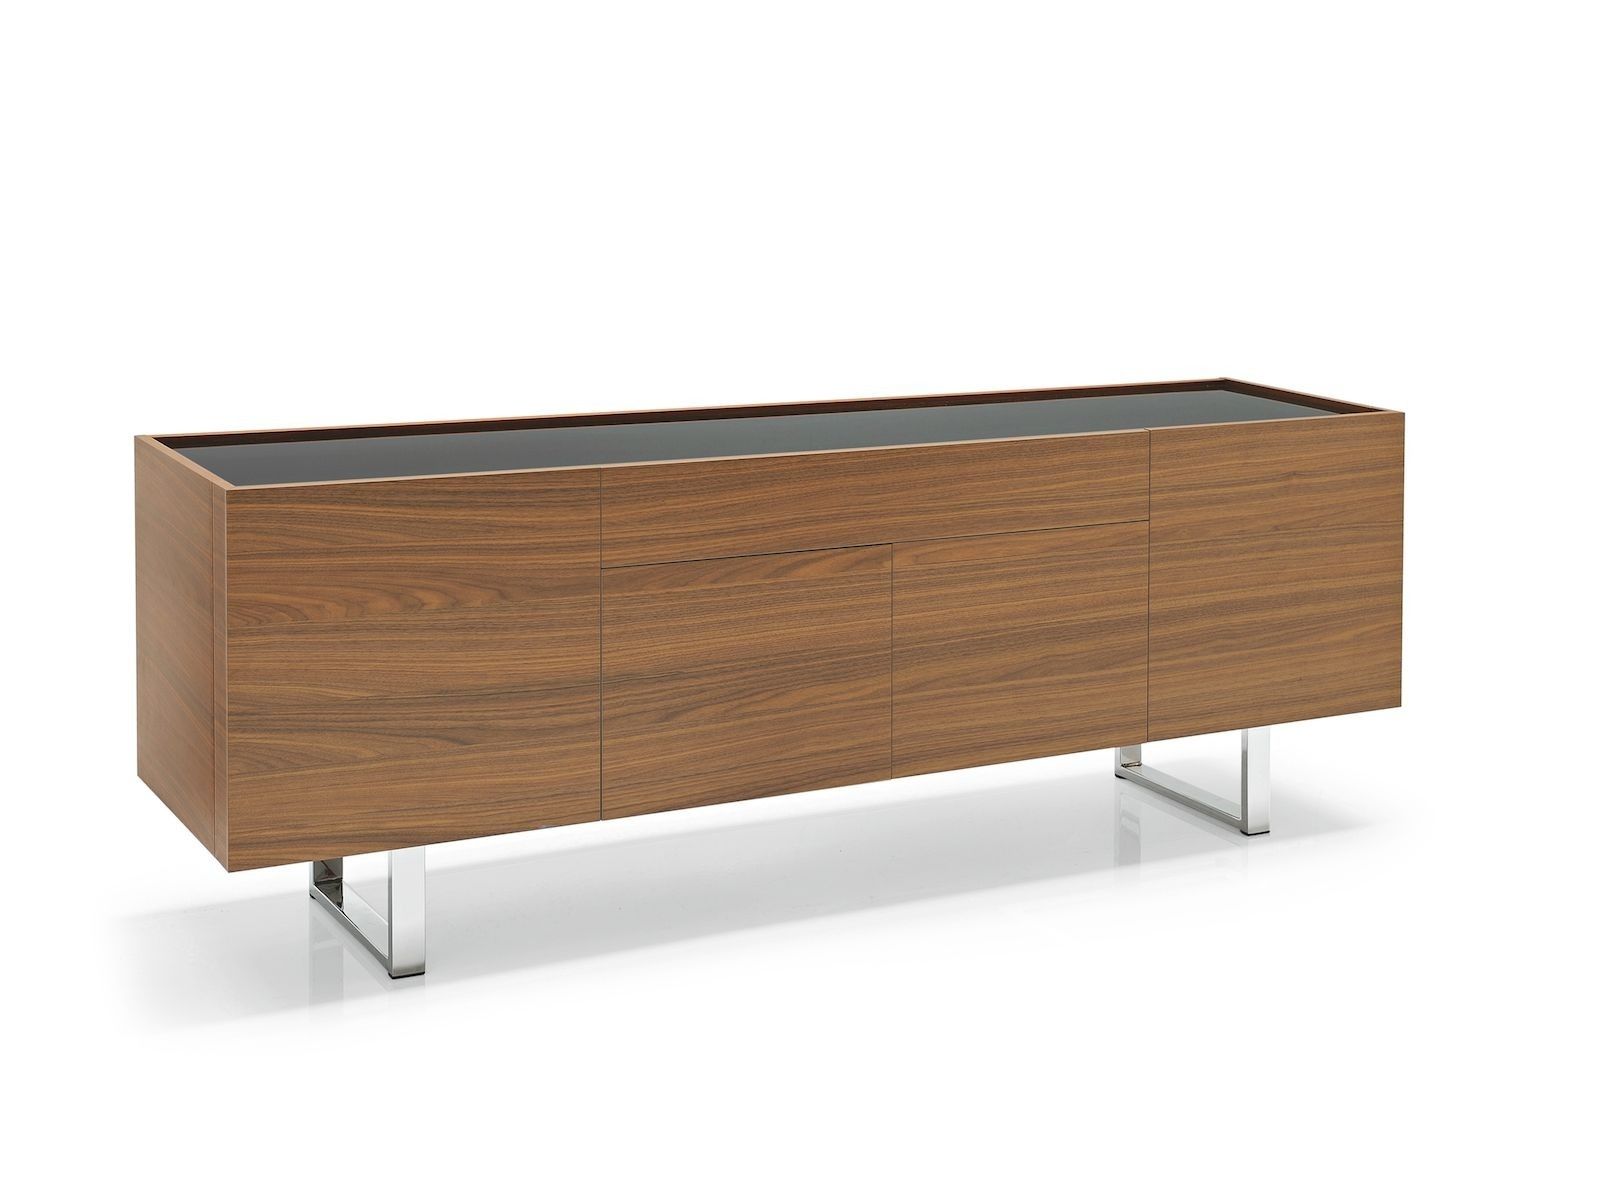 Calligaris Horizon 4 Door With Central Drawer Sideboard – Frank Mc Gowan pertaining to 4-Door/4-Drawer Metal Inserts Sideboards (Image 10 of 30)